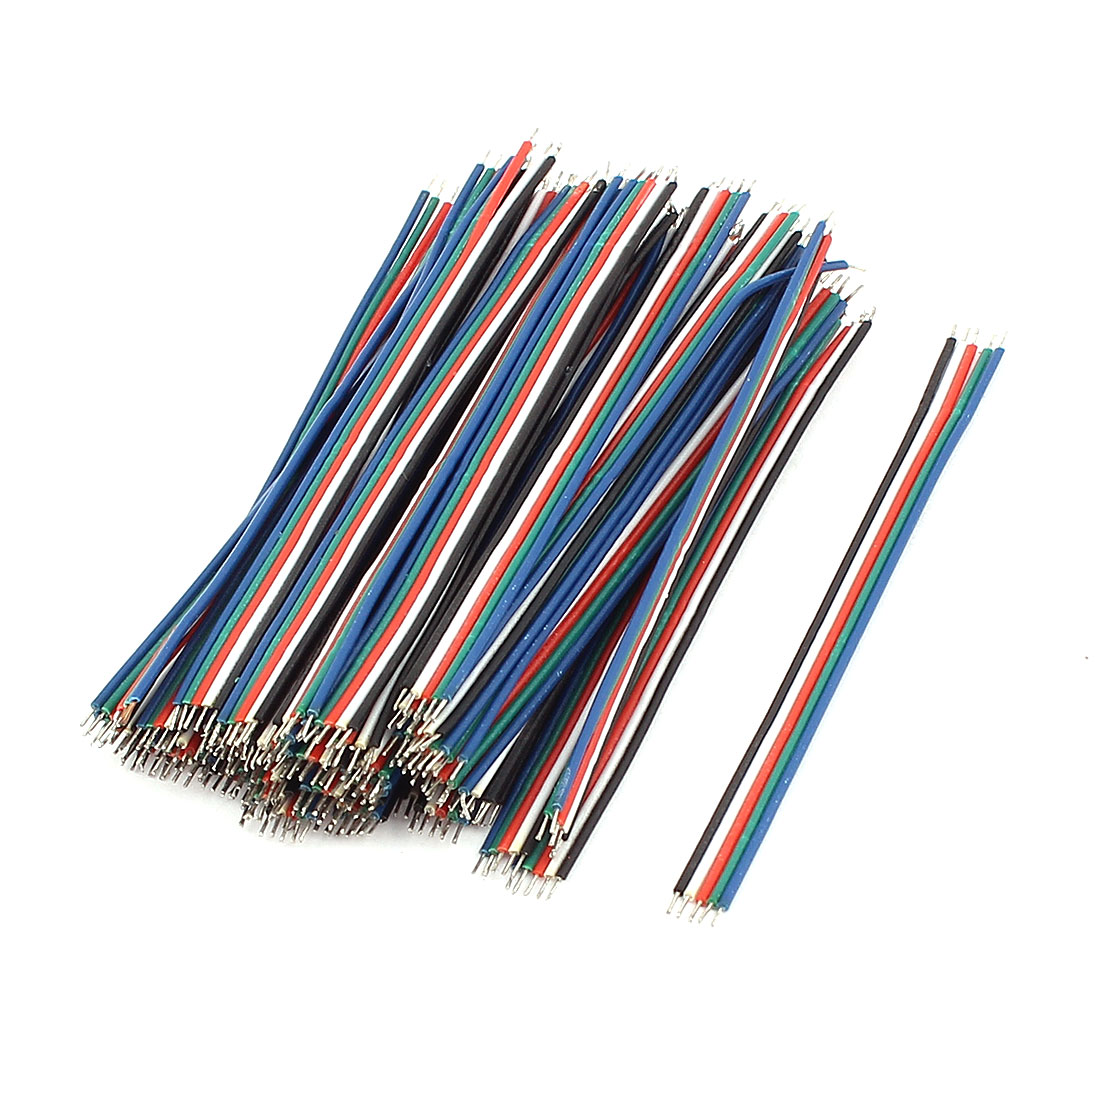 0.8mm x 65mm 5 Terminals Electric Insulated Flexible PVC Wire Cable 50Pcs